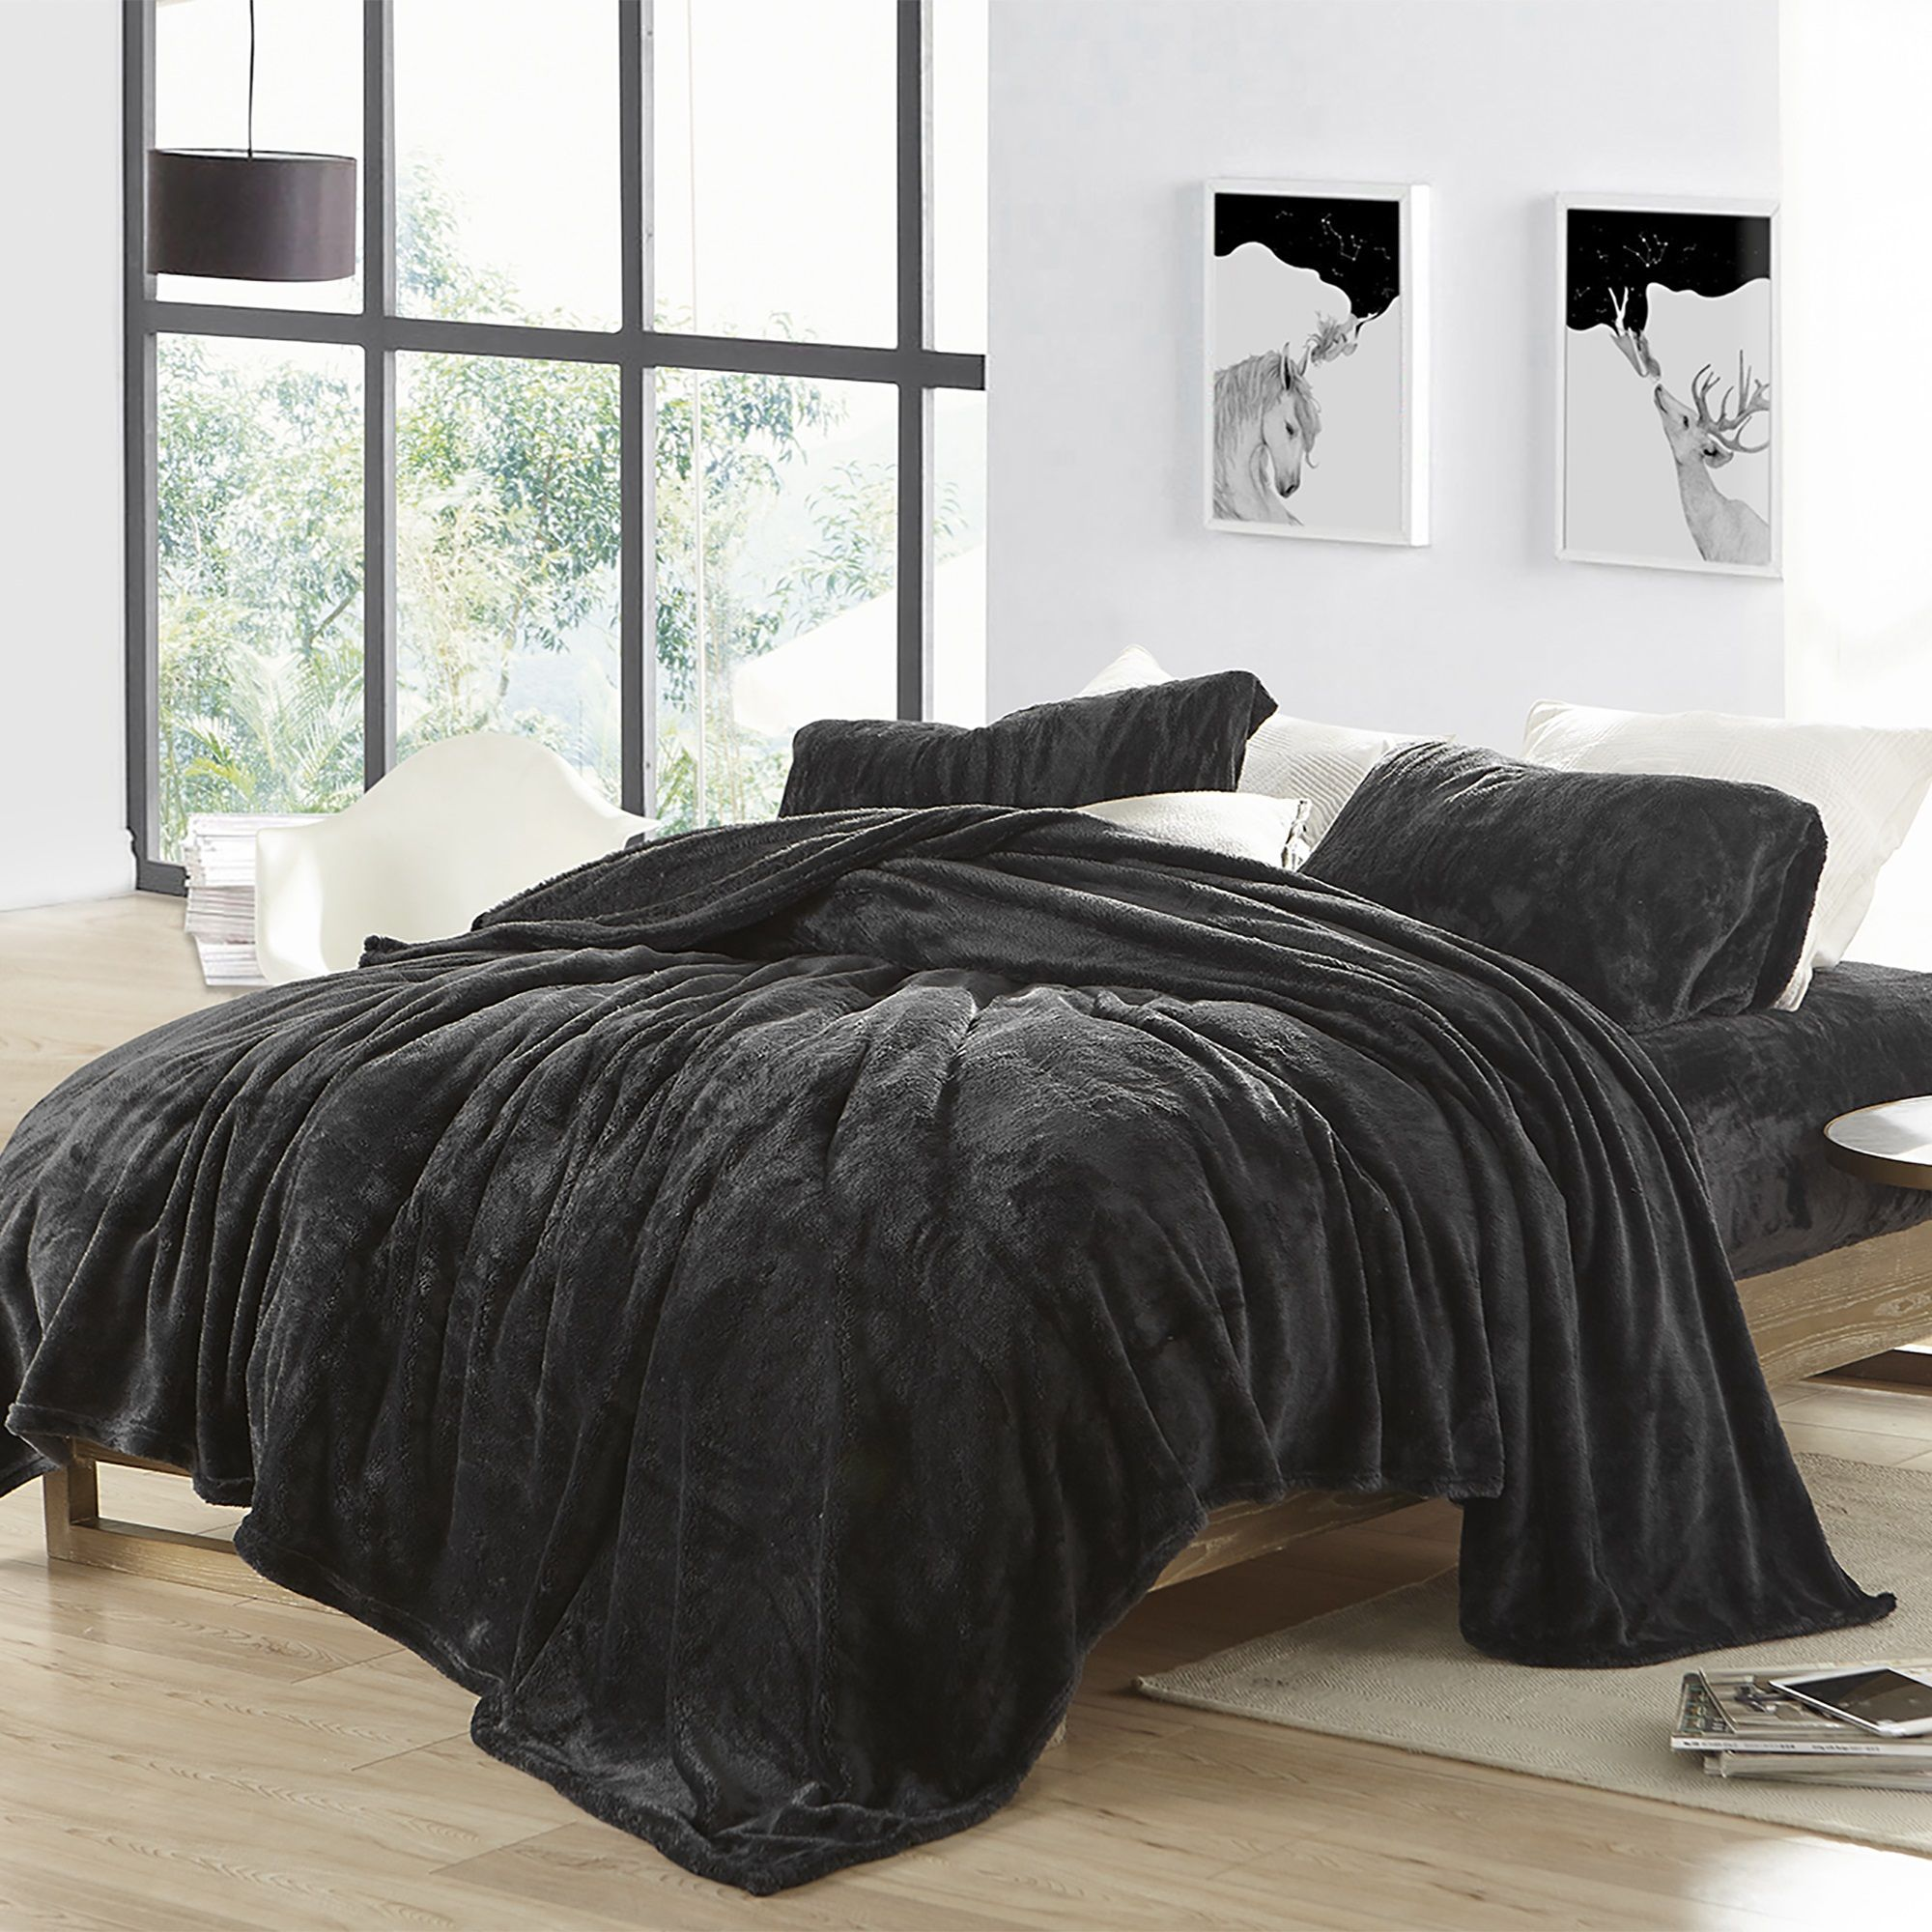 Home in 2020 comfy bed bed sheet sets luxurious bedrooms